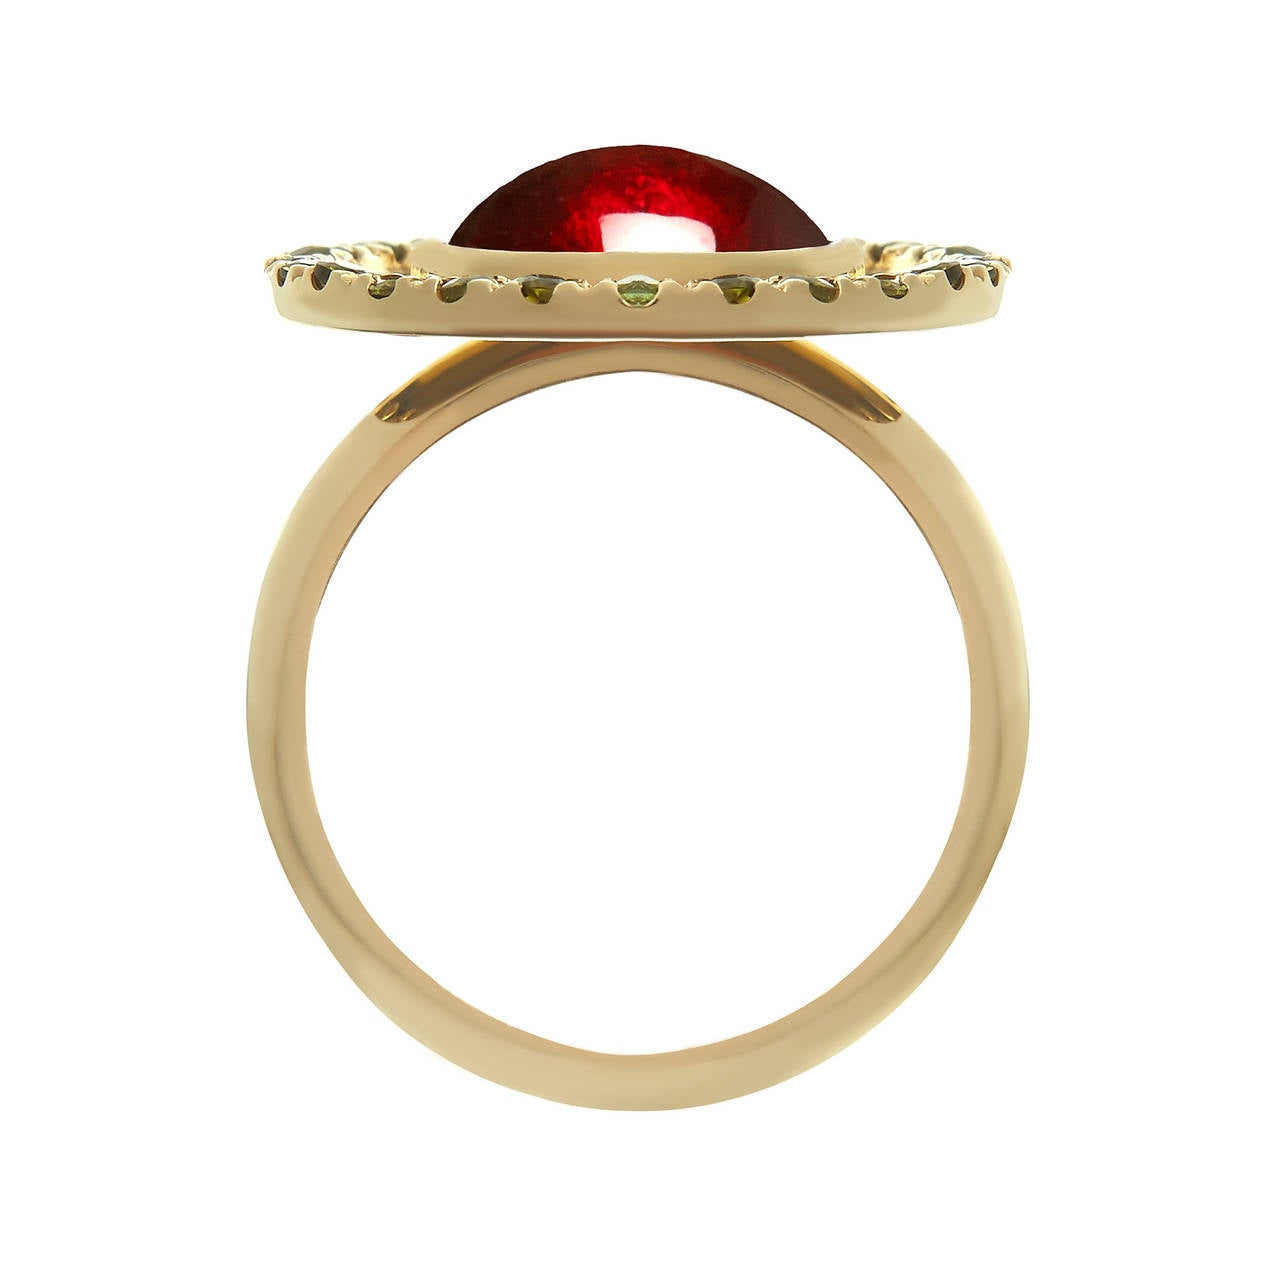 18ct yellow gold, garnet and green tourmaline ring  In Tessa's world wearing sweets is more fun than eating sweets. The designer cites the retro, sherbet-filled Flying Saucer sweet as the inspiration for this pretty cocktail ring. Hand crafted in